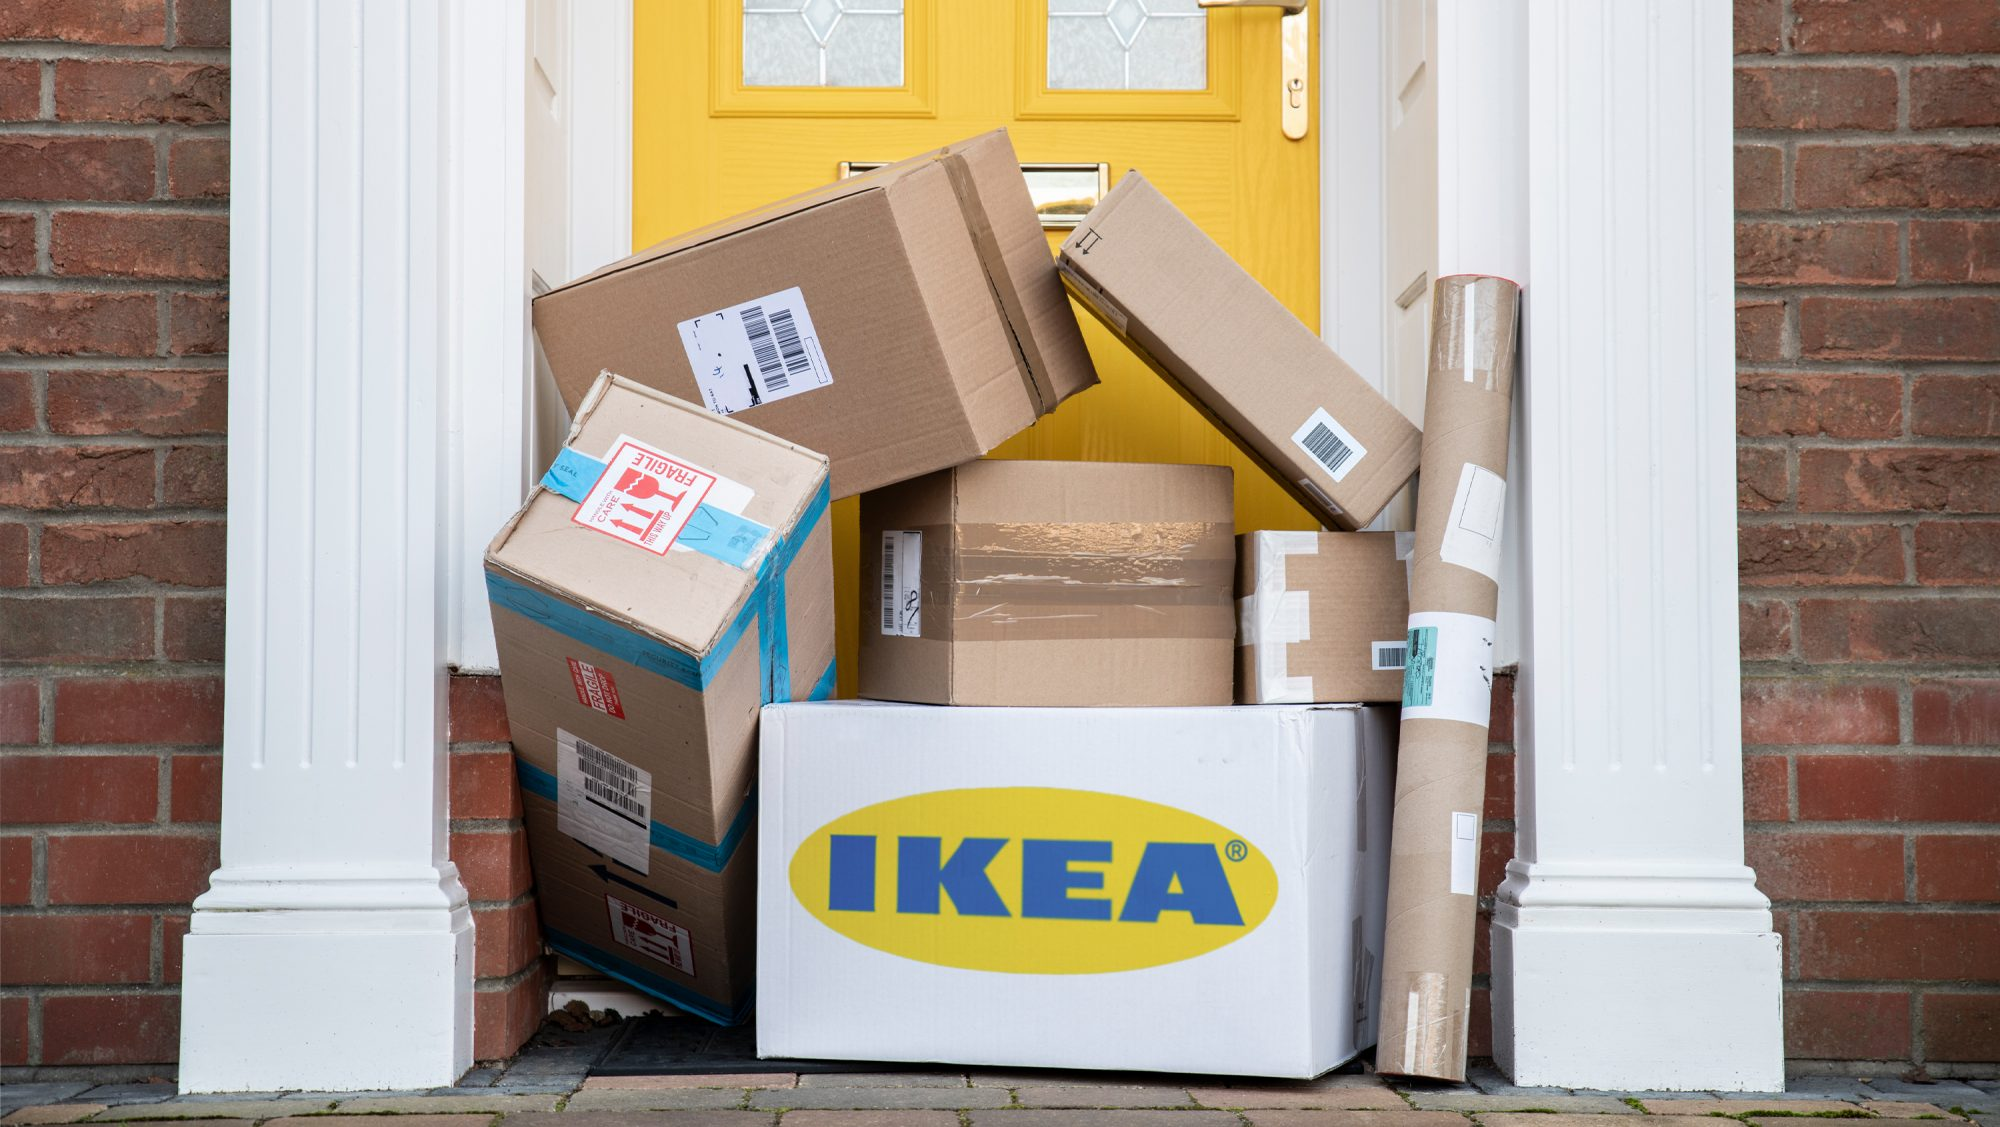 Ikea Delivery What To Know Before You Order Real Simple,How To Get Out Of The Friend Zone Book Pdf